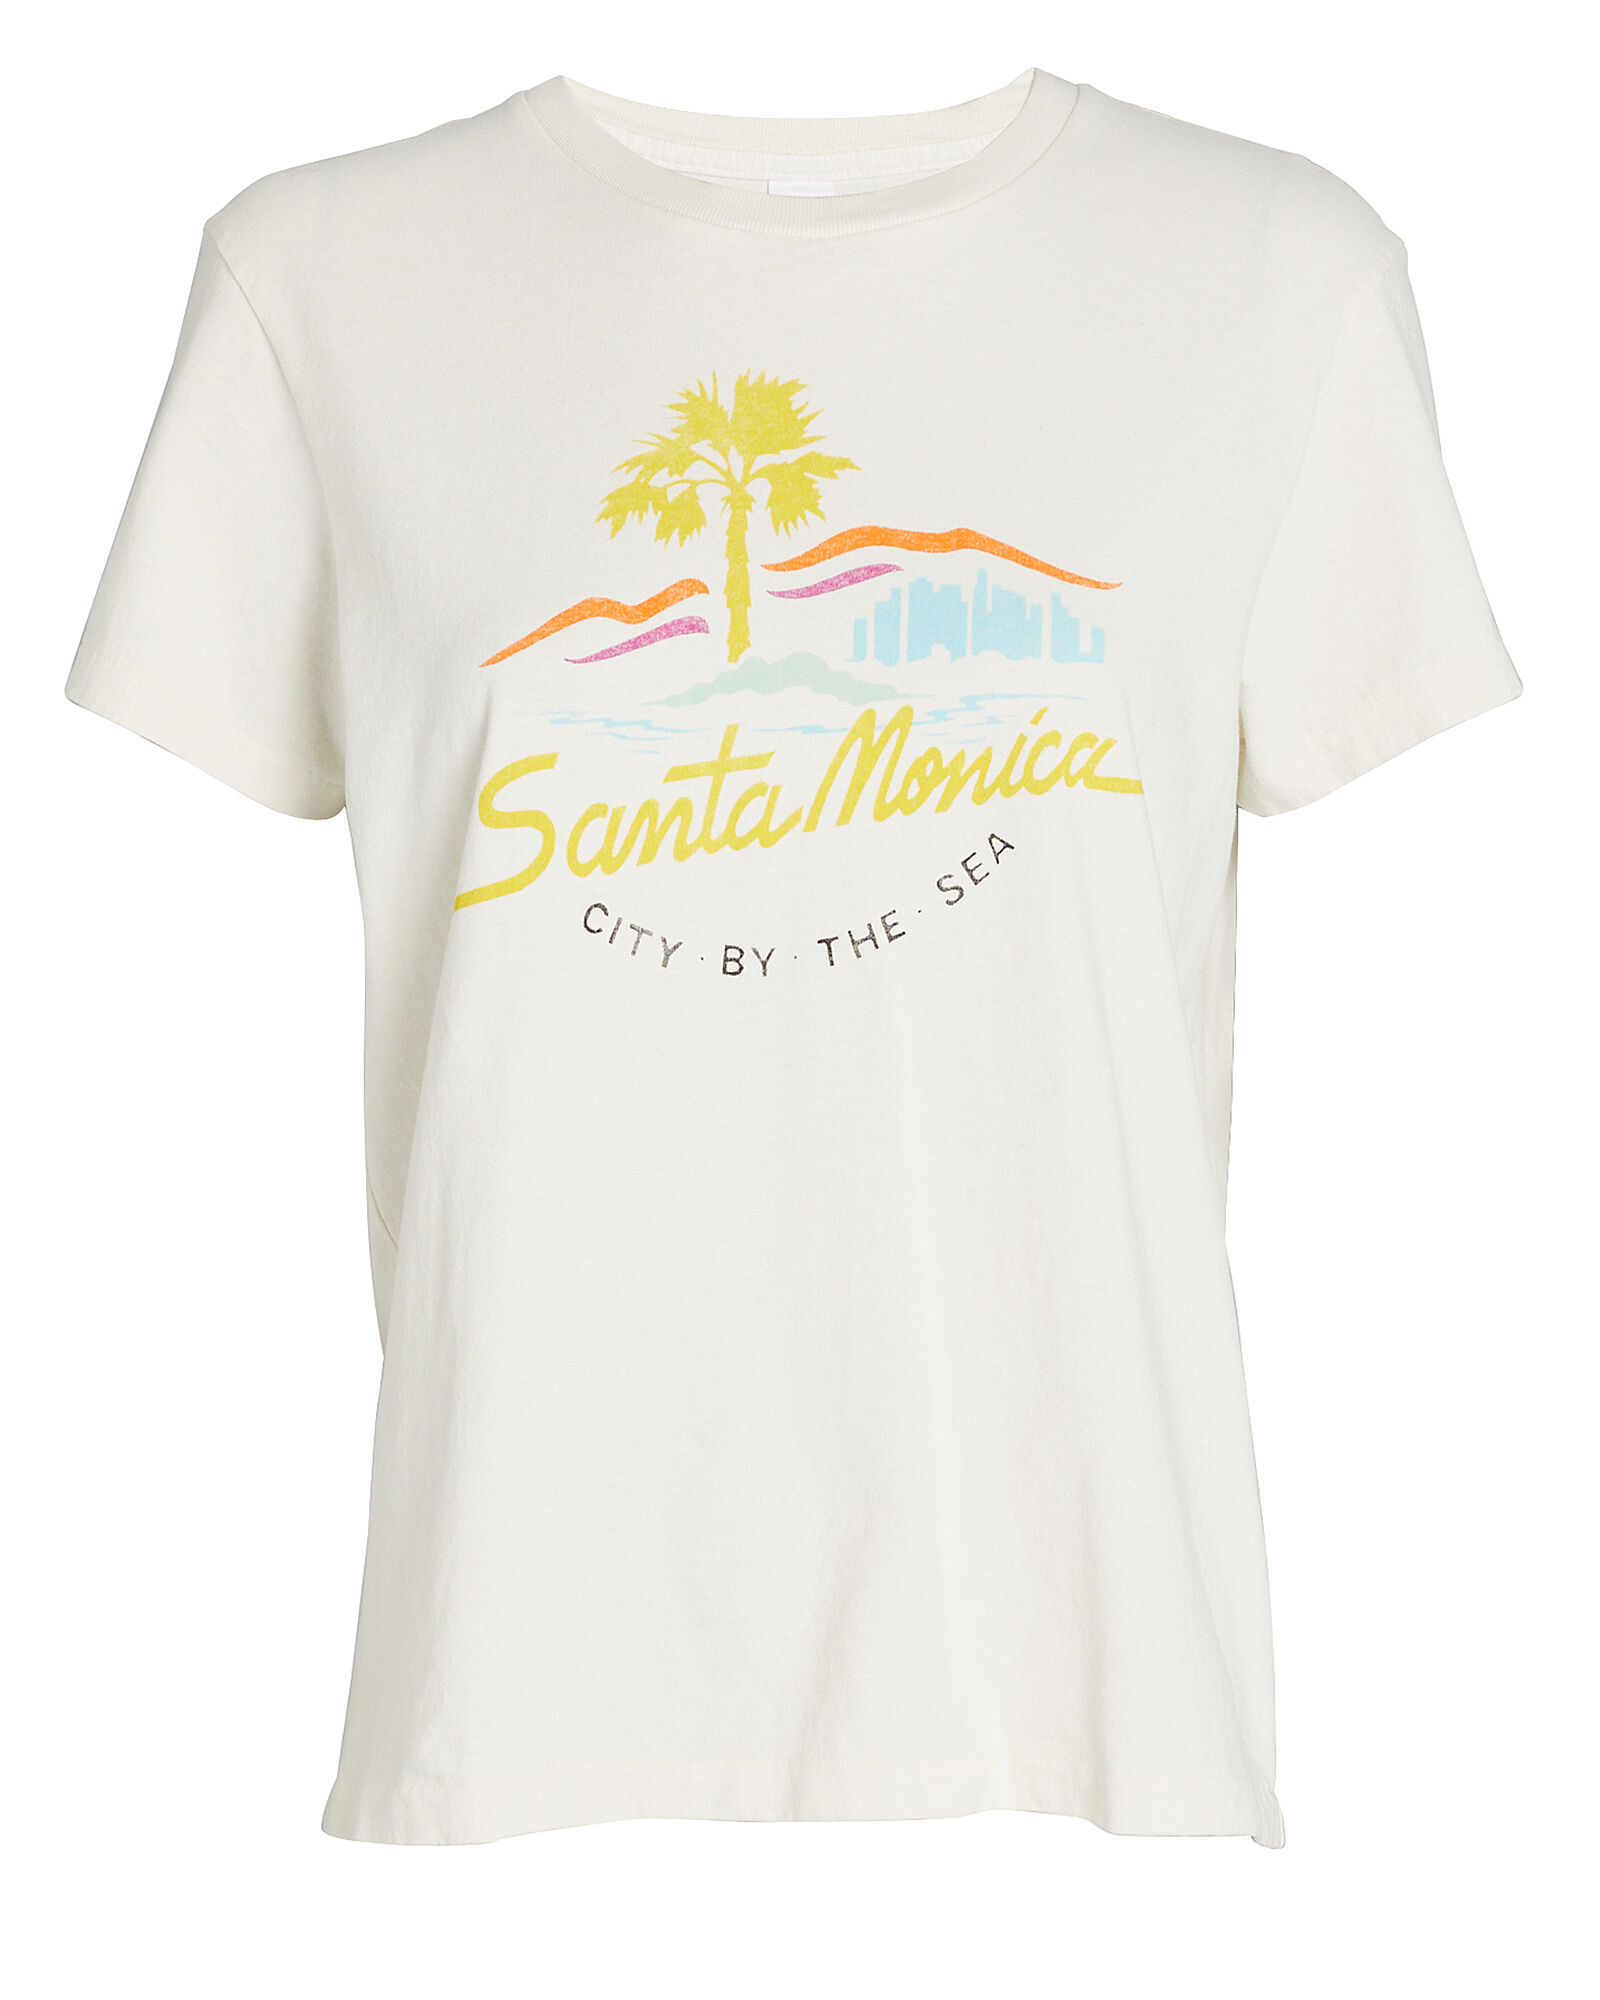 70s Loose City by the Sea T-Shirt, , hi-res